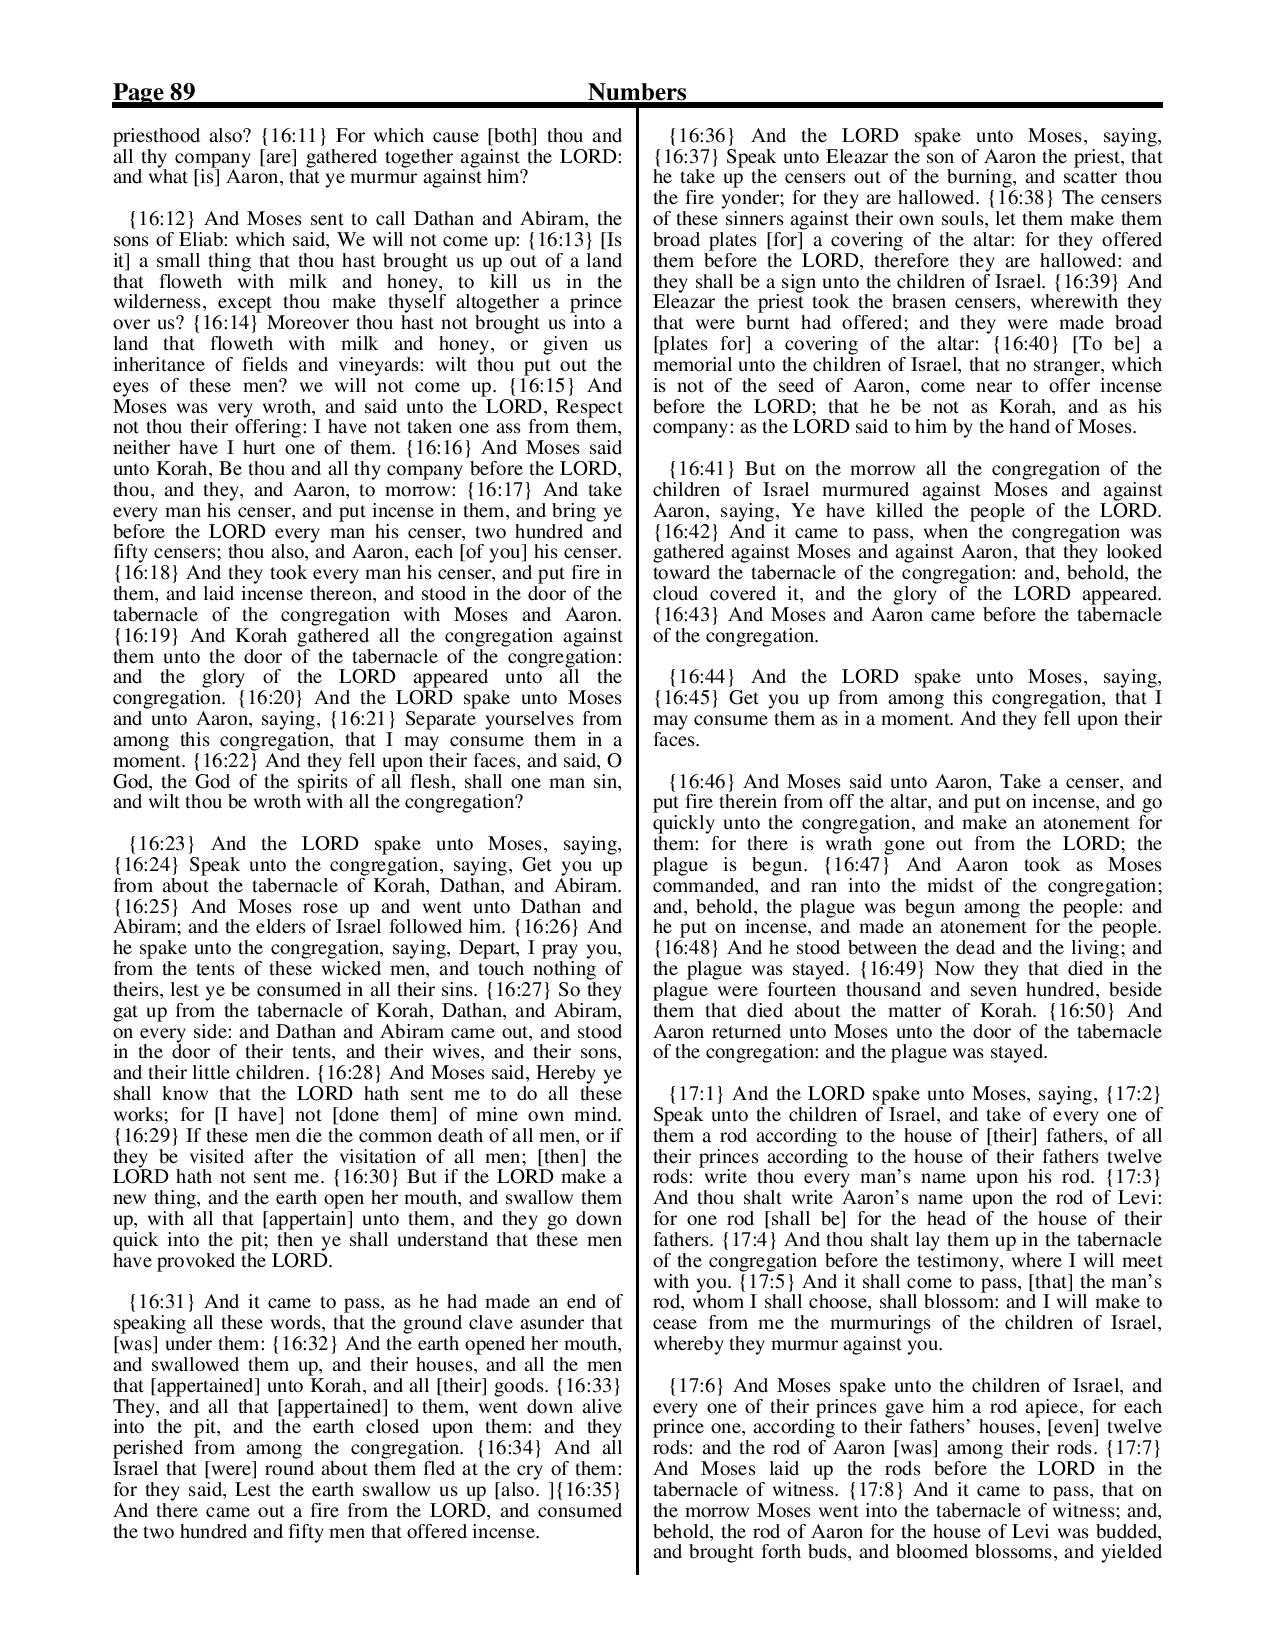 King-James-Bible-KJV-Bible-PDF-page-110